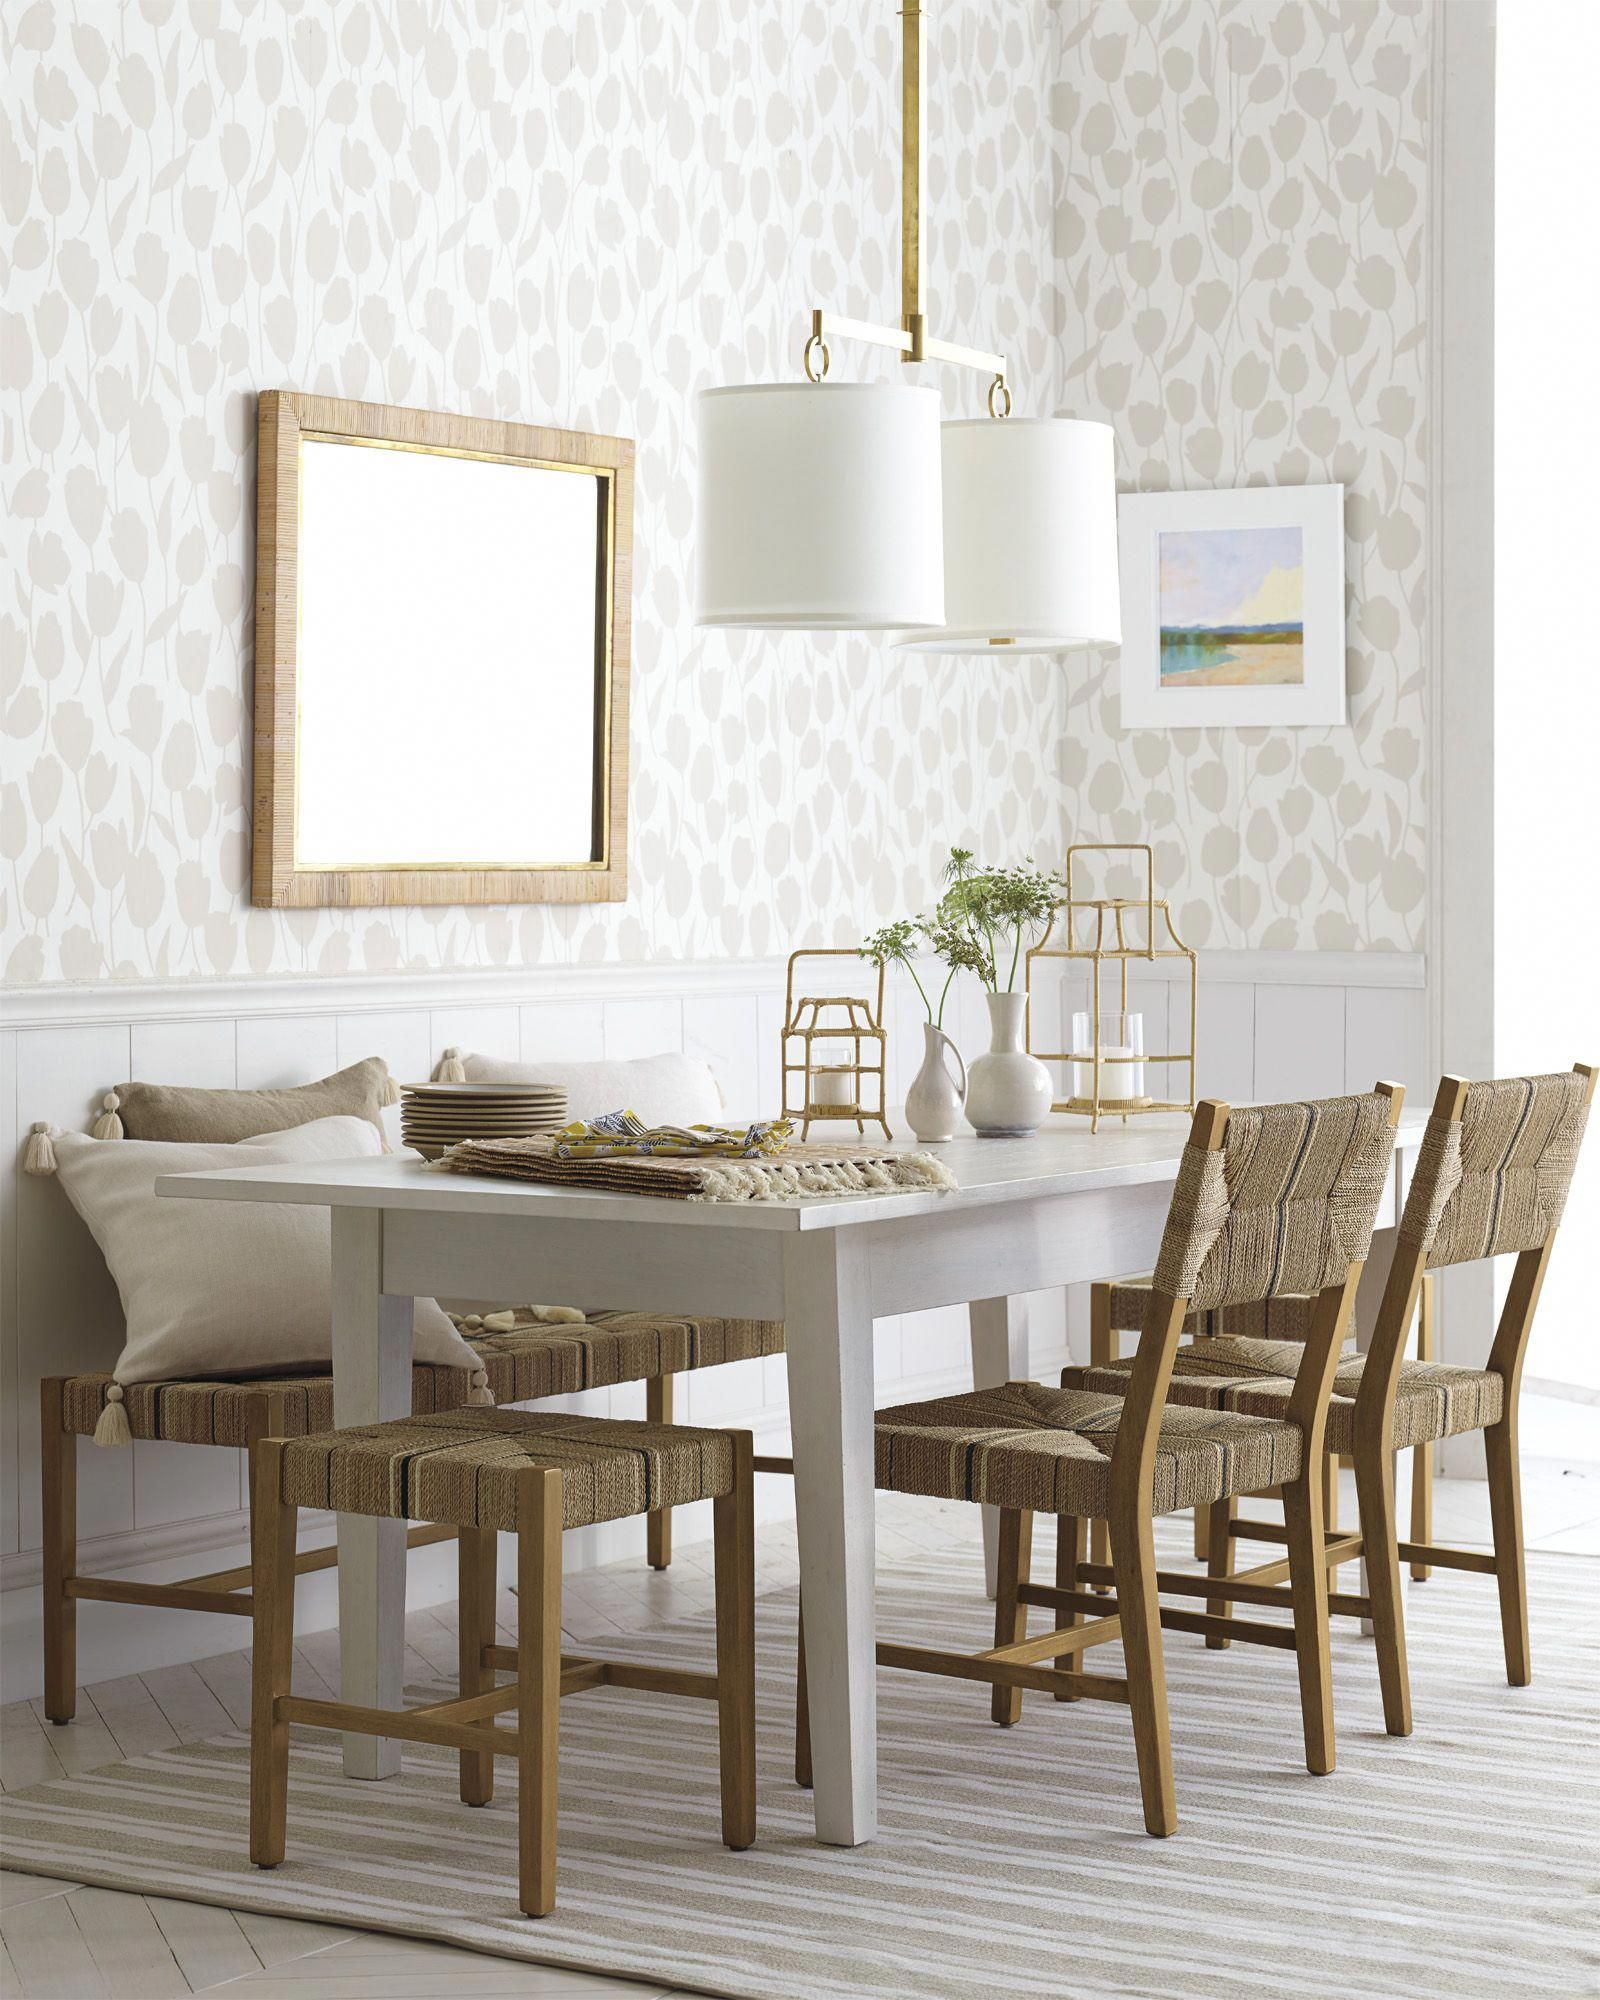 carson side chair chairs serena and lily diningtablechairs accent for dining room table wooden small patio white resin oak coffee nest pier one cushions imports furniture mat